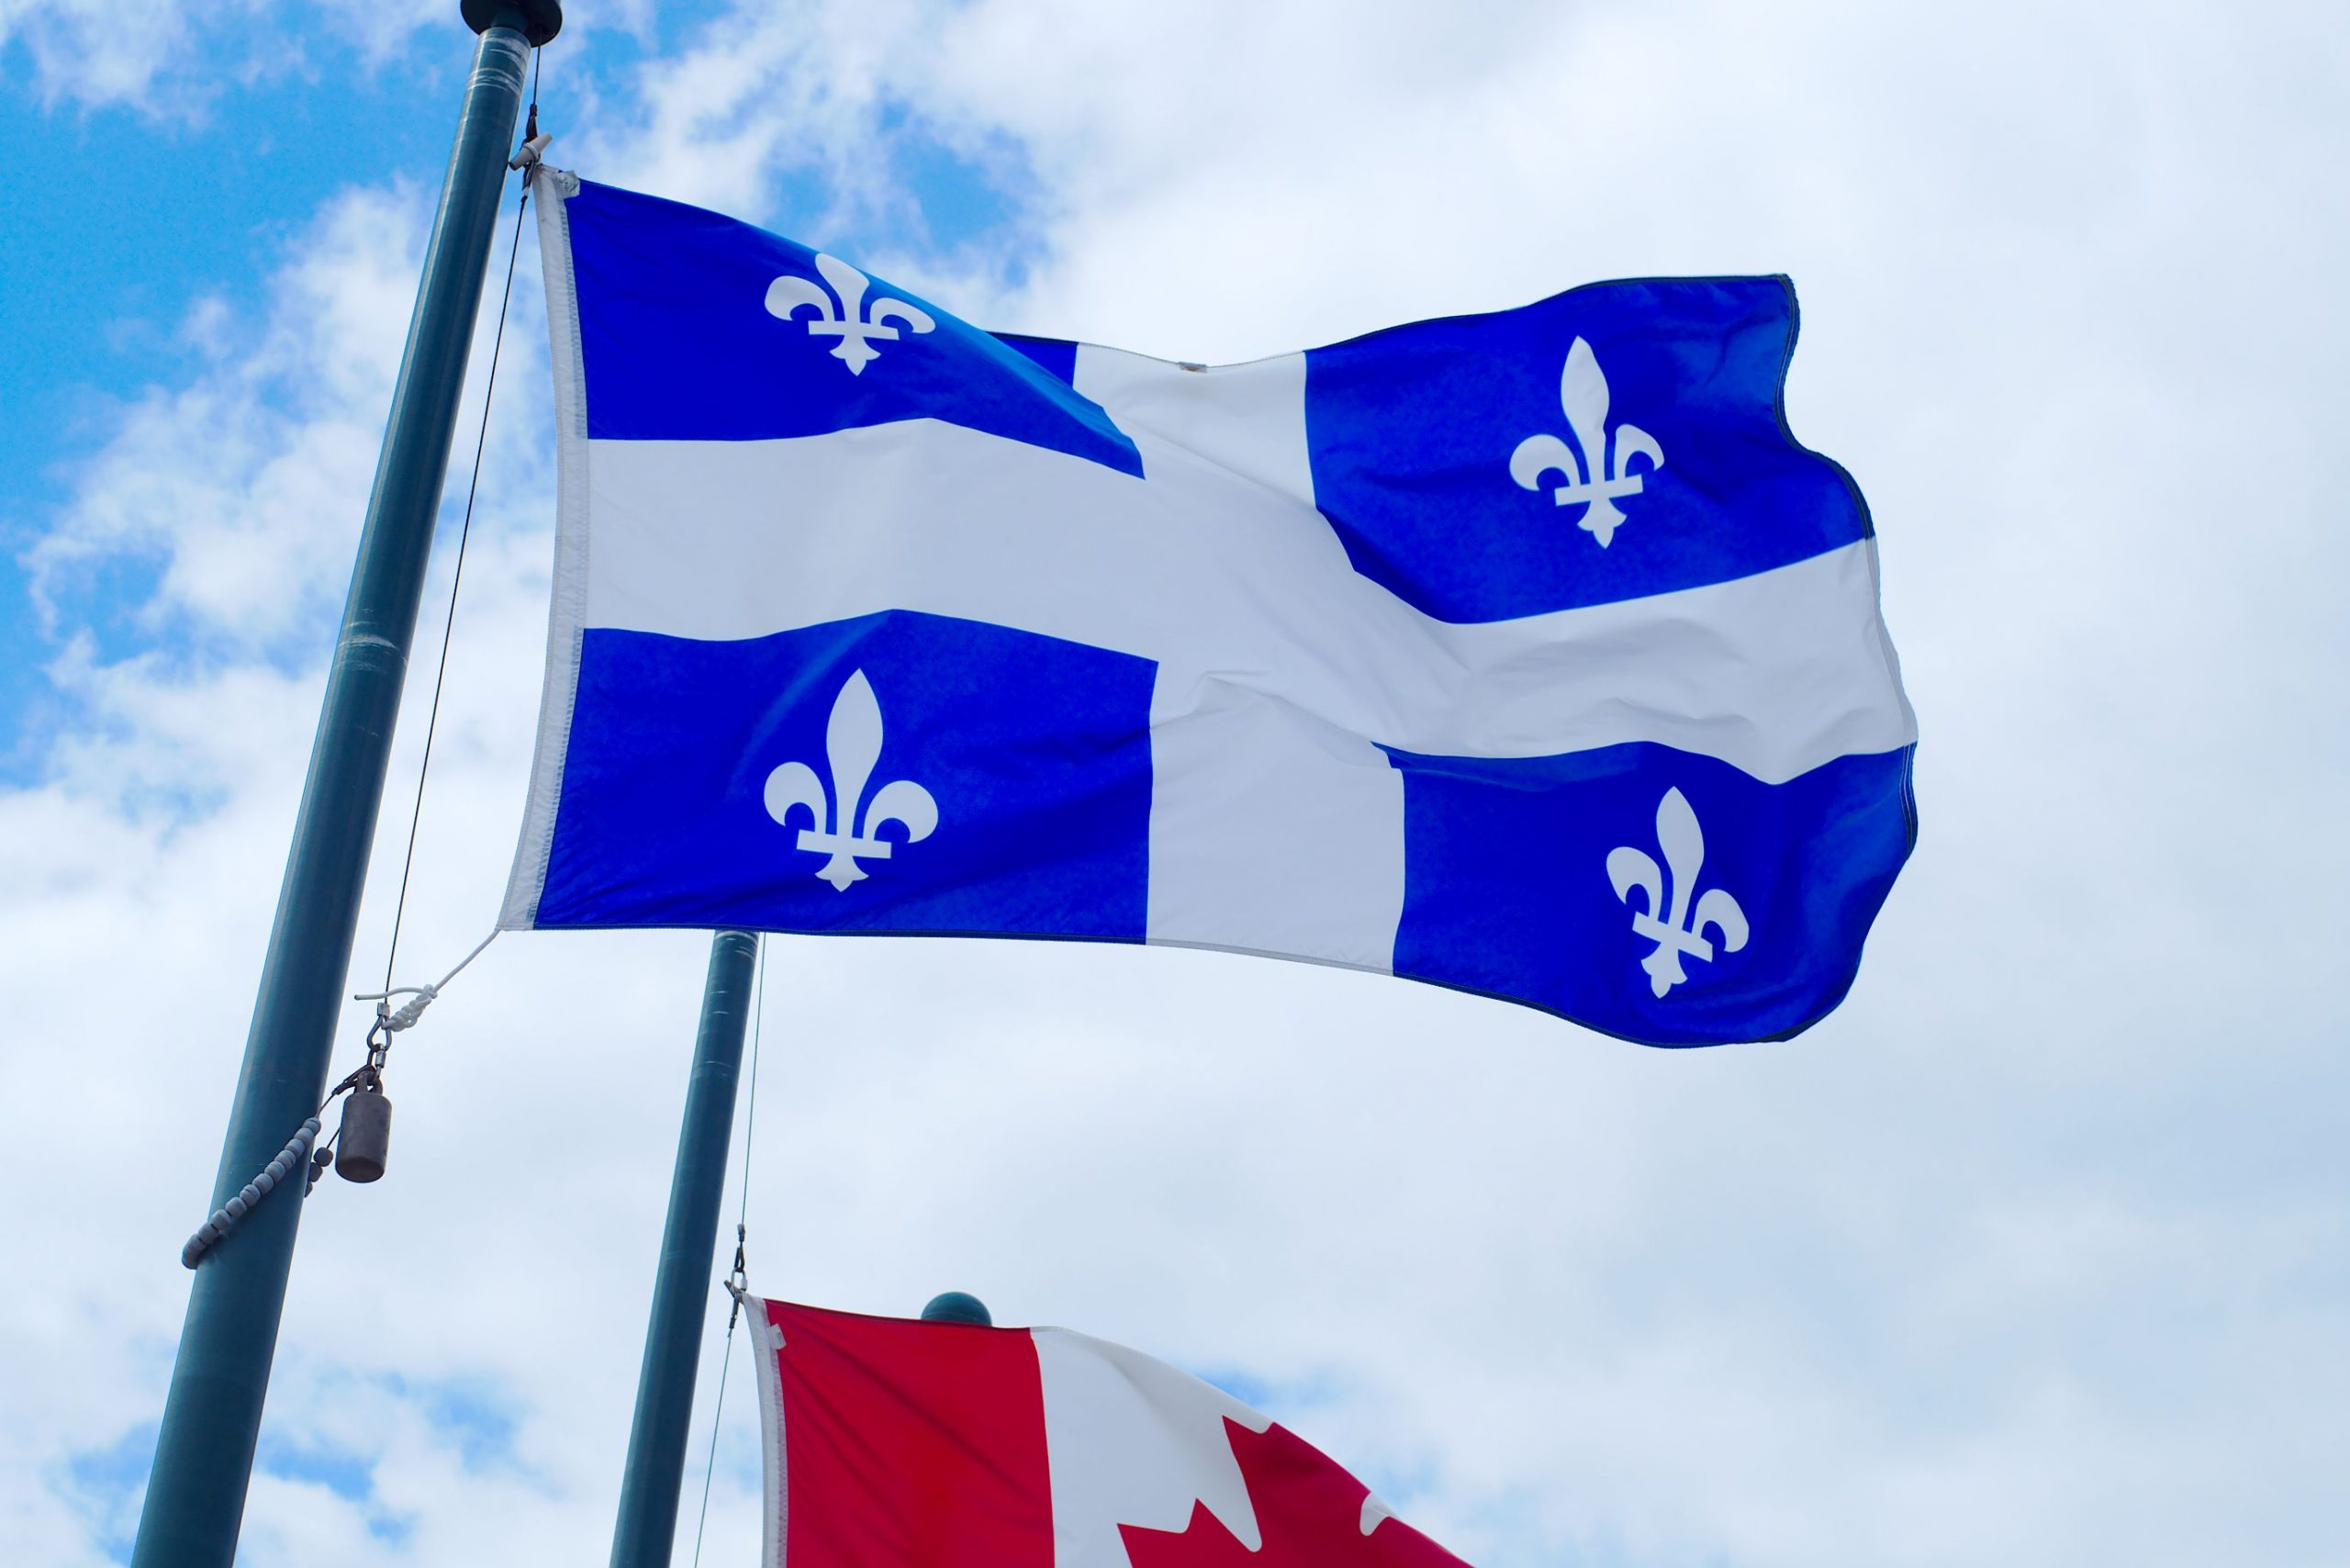 quebec canada courtiers hypothecaires